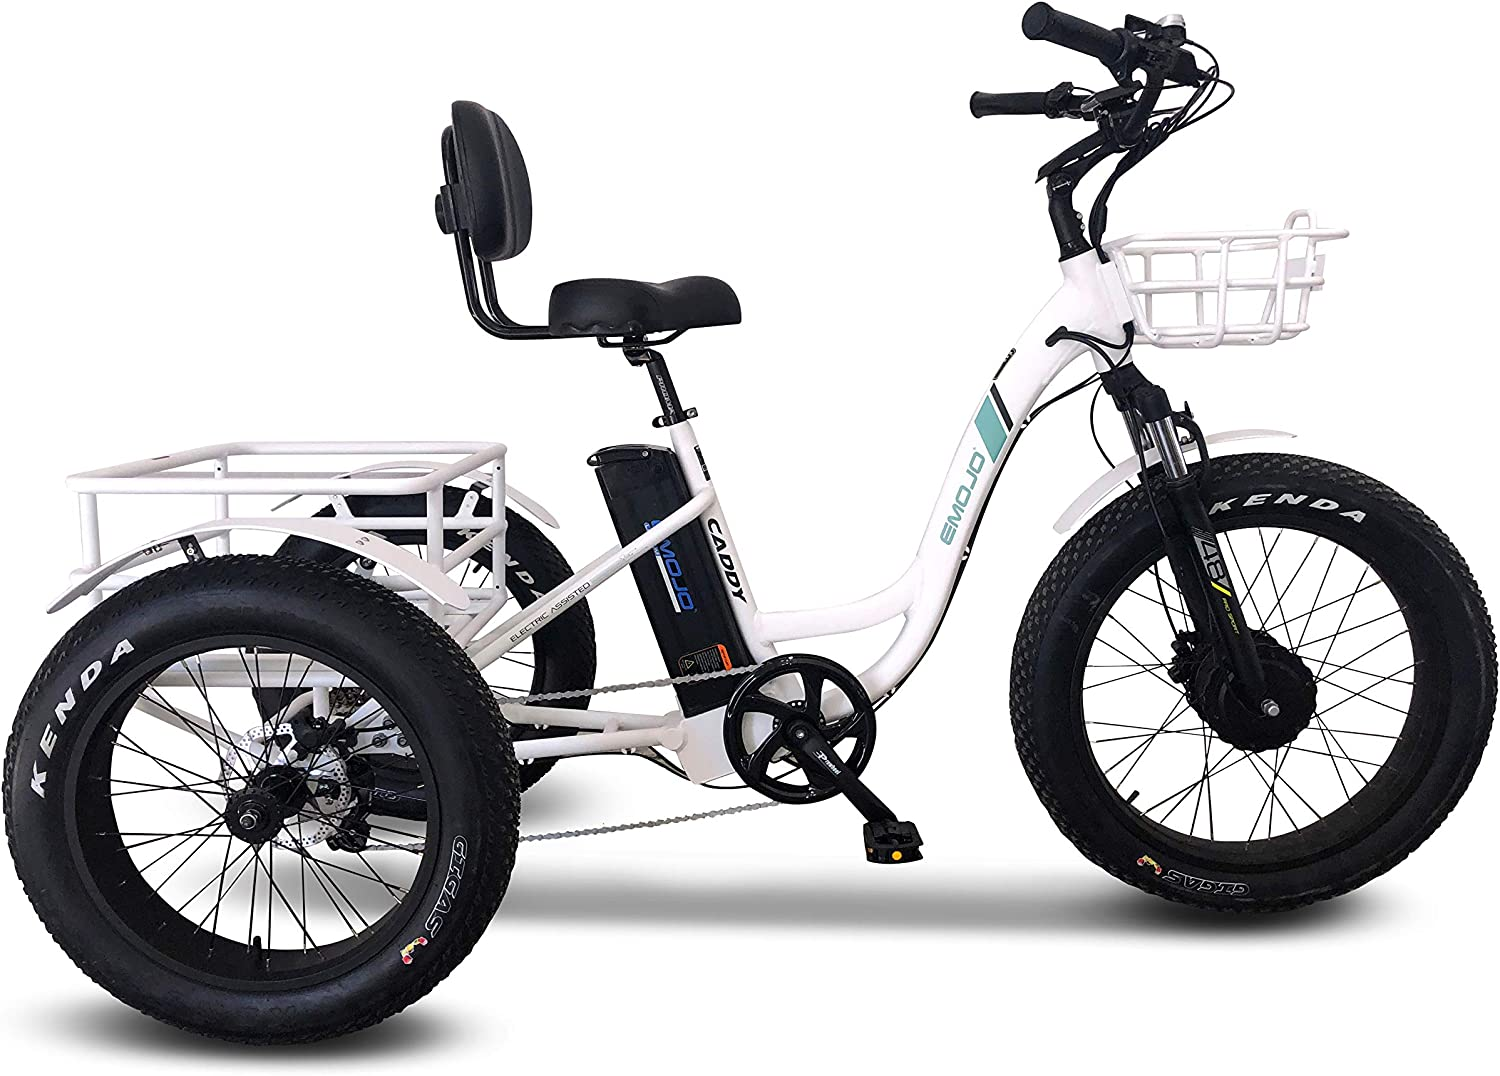 Emojo Caddy Pro//Caddy Electric Tricycle 48V 500W Best Electric Trike 24 Inch Fat Tire 3 Wheel Ebike Electric Bike Lithium Battery Rear Basket Cargo for Heavy-Duty Carrying or Delivery